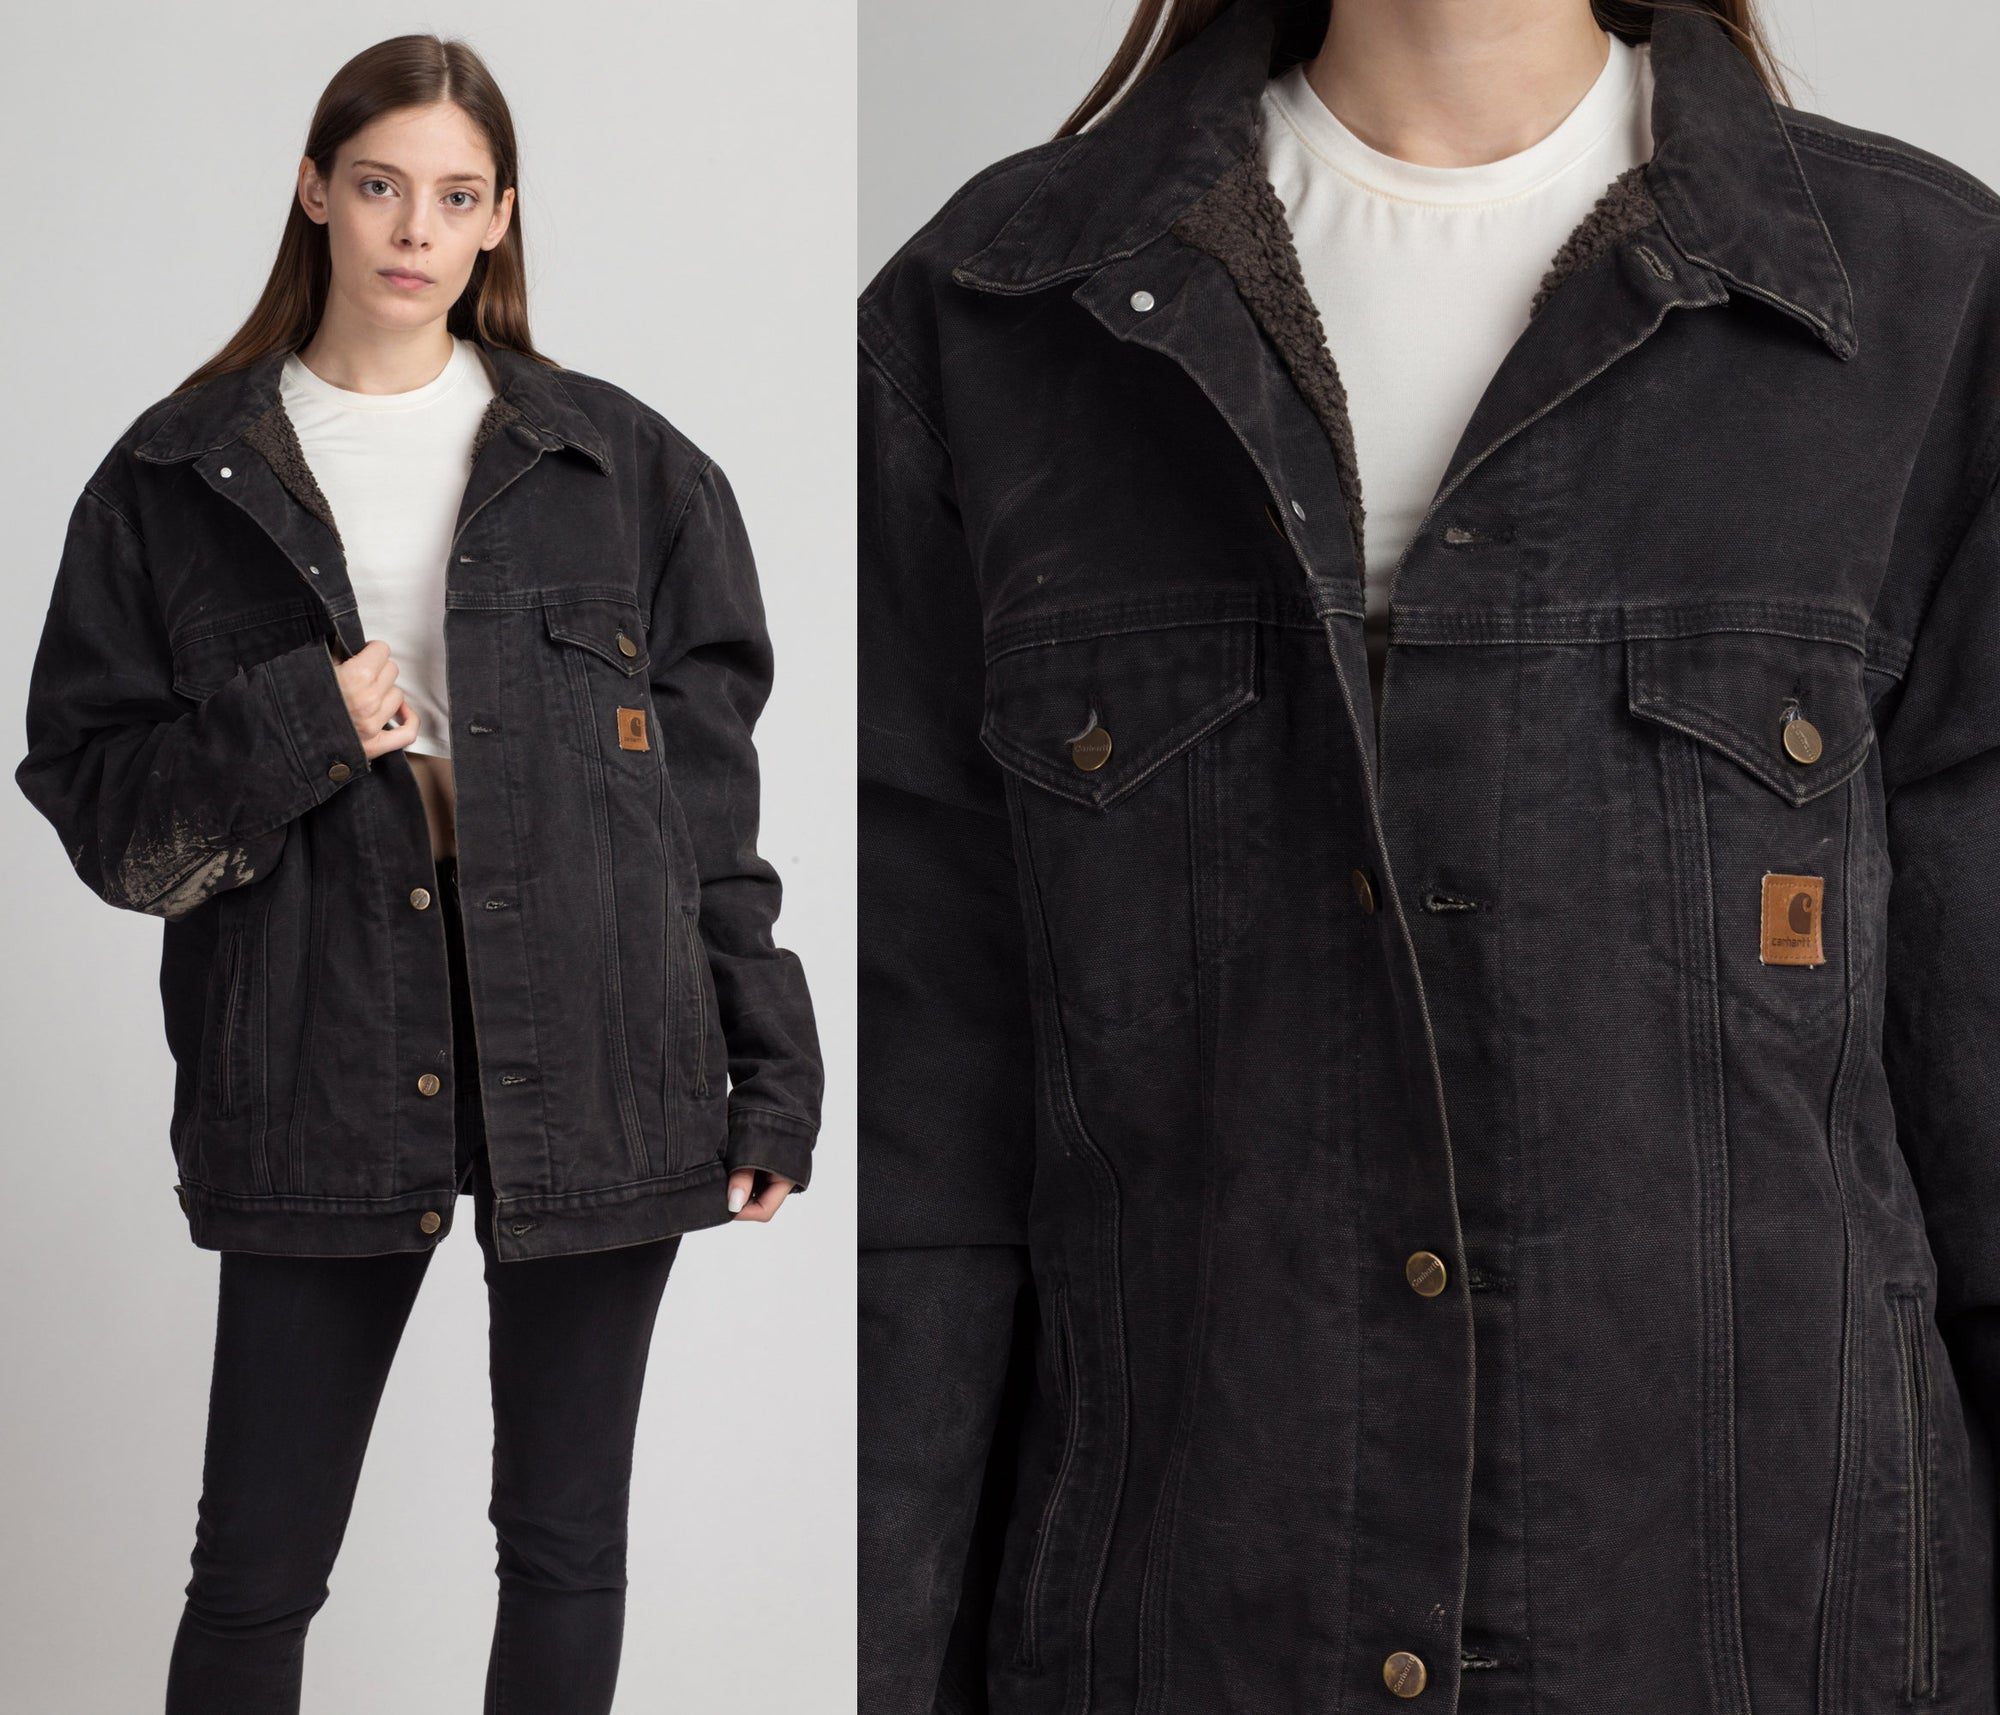 Vintage Carhartt Workwear Jacket - Men's XL | Black Distressed Heavyweight Cotton Duck Denim Chore Coat